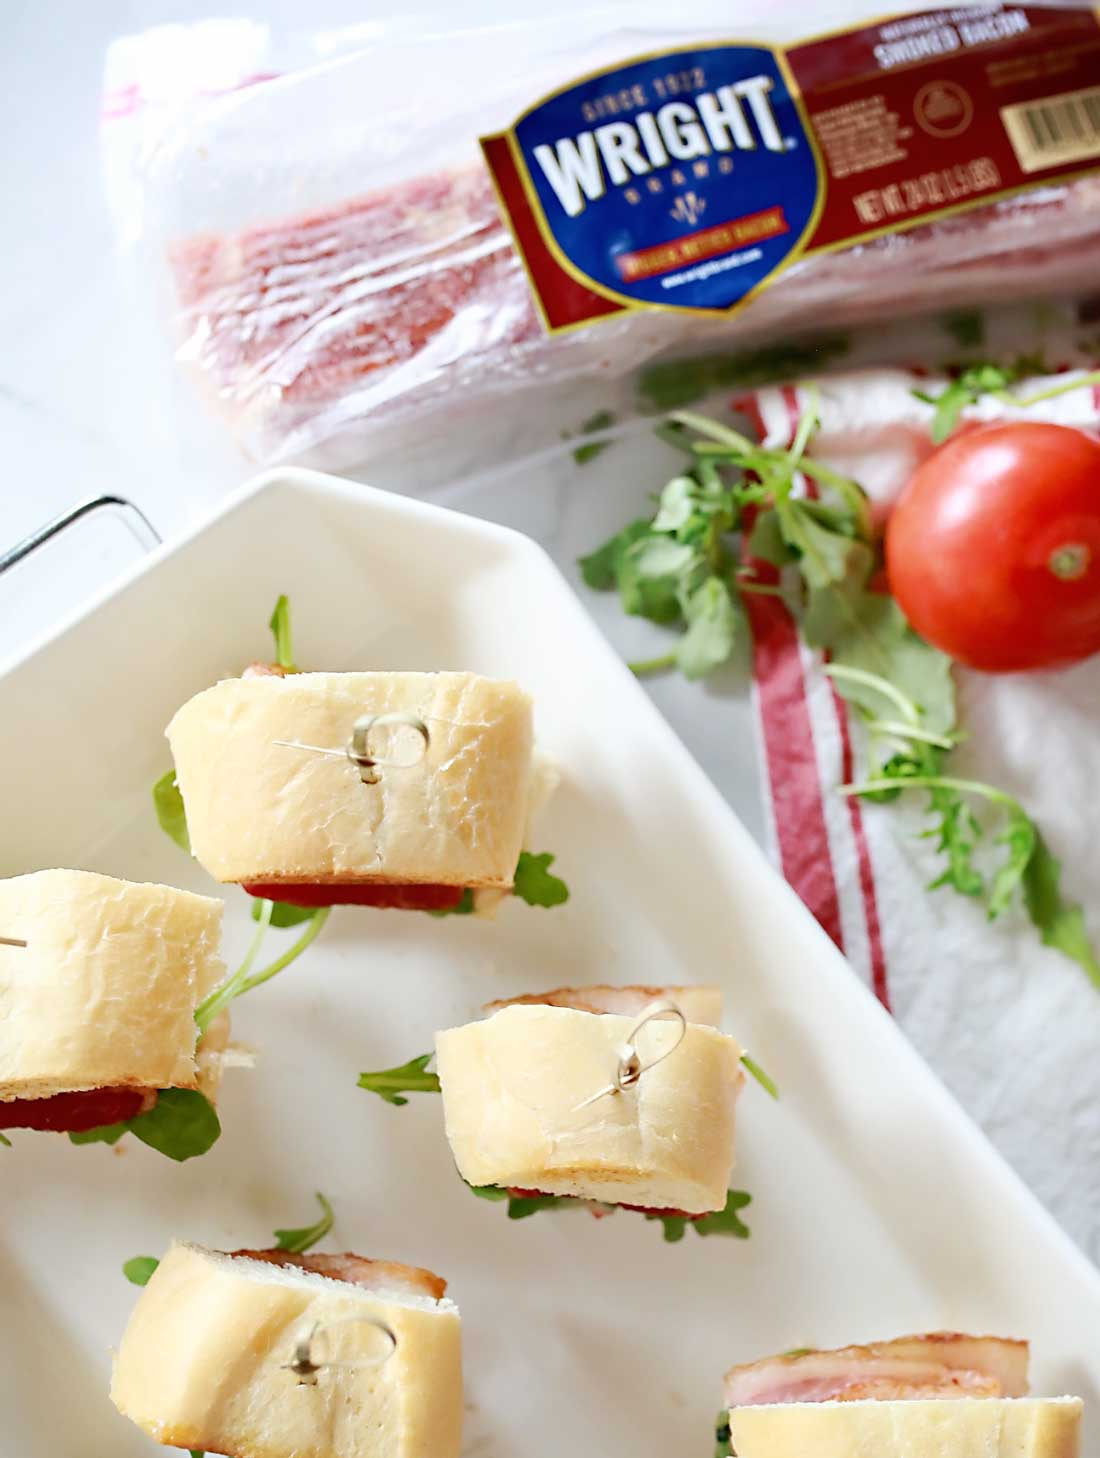 Wright brand bacon is the best to use in BLTs because its bigger and better!